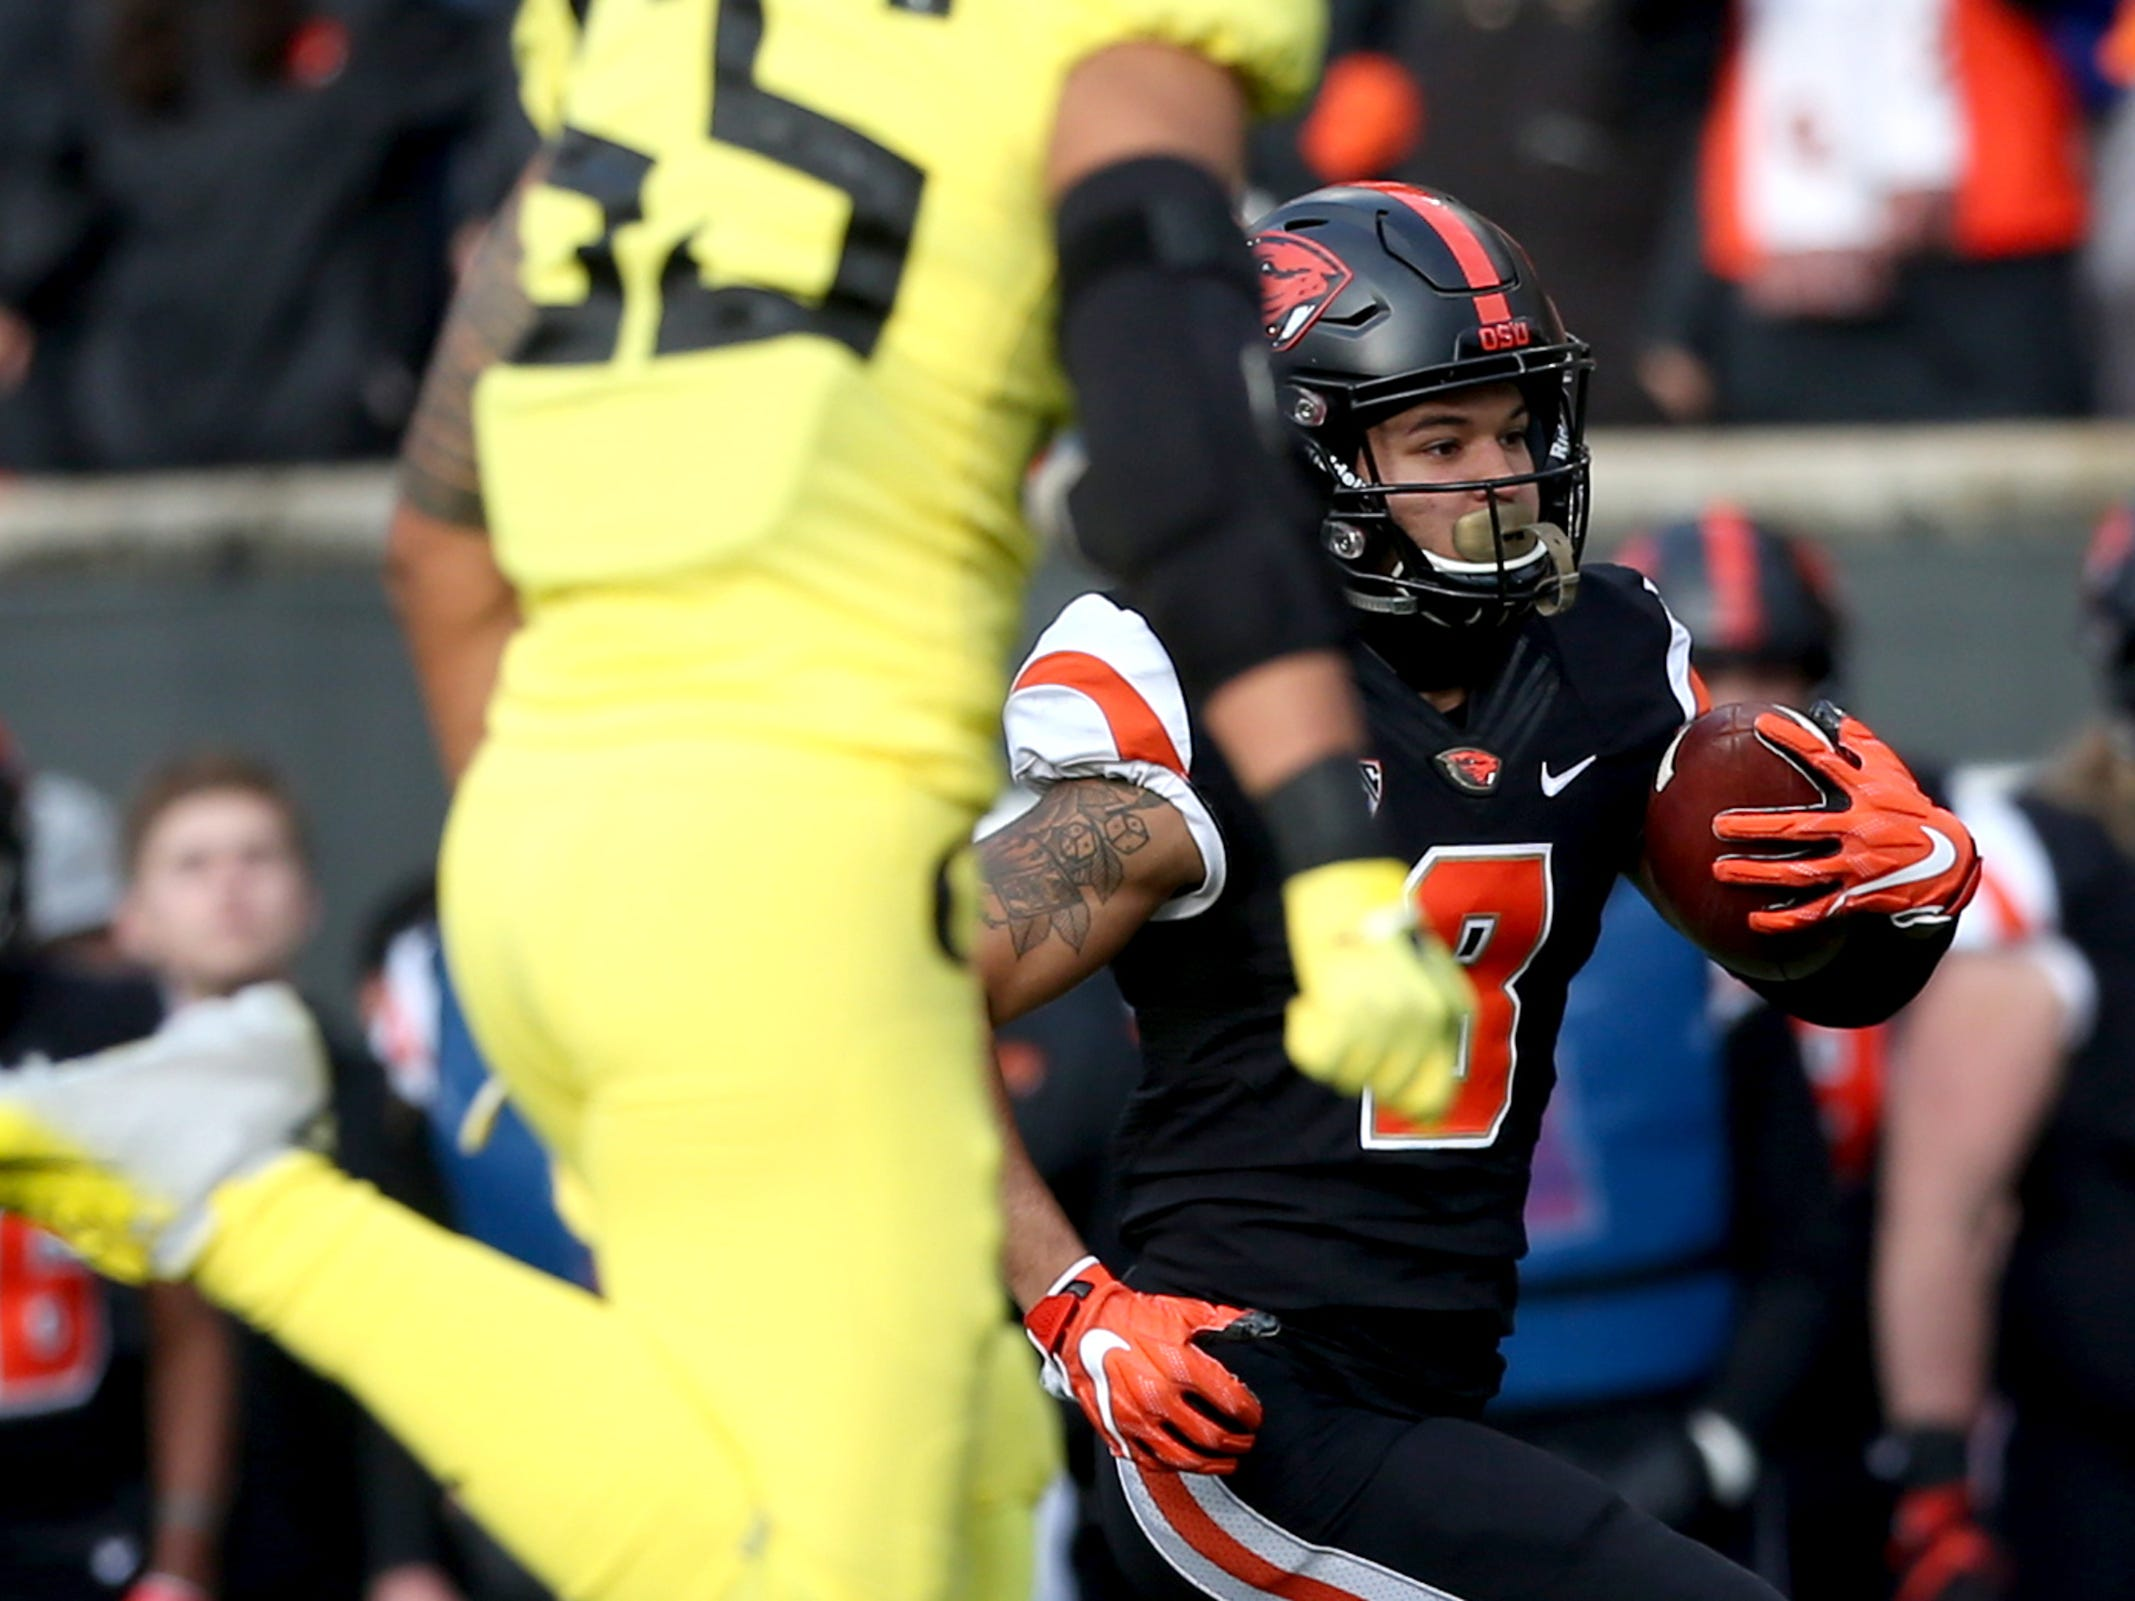 Oregon State's Trevon Bradford (8) rushes in the Oregon vs. Oregon State Civil war football game at Oregon State University in Corvallis on Friday, Nov. 23, 2018.